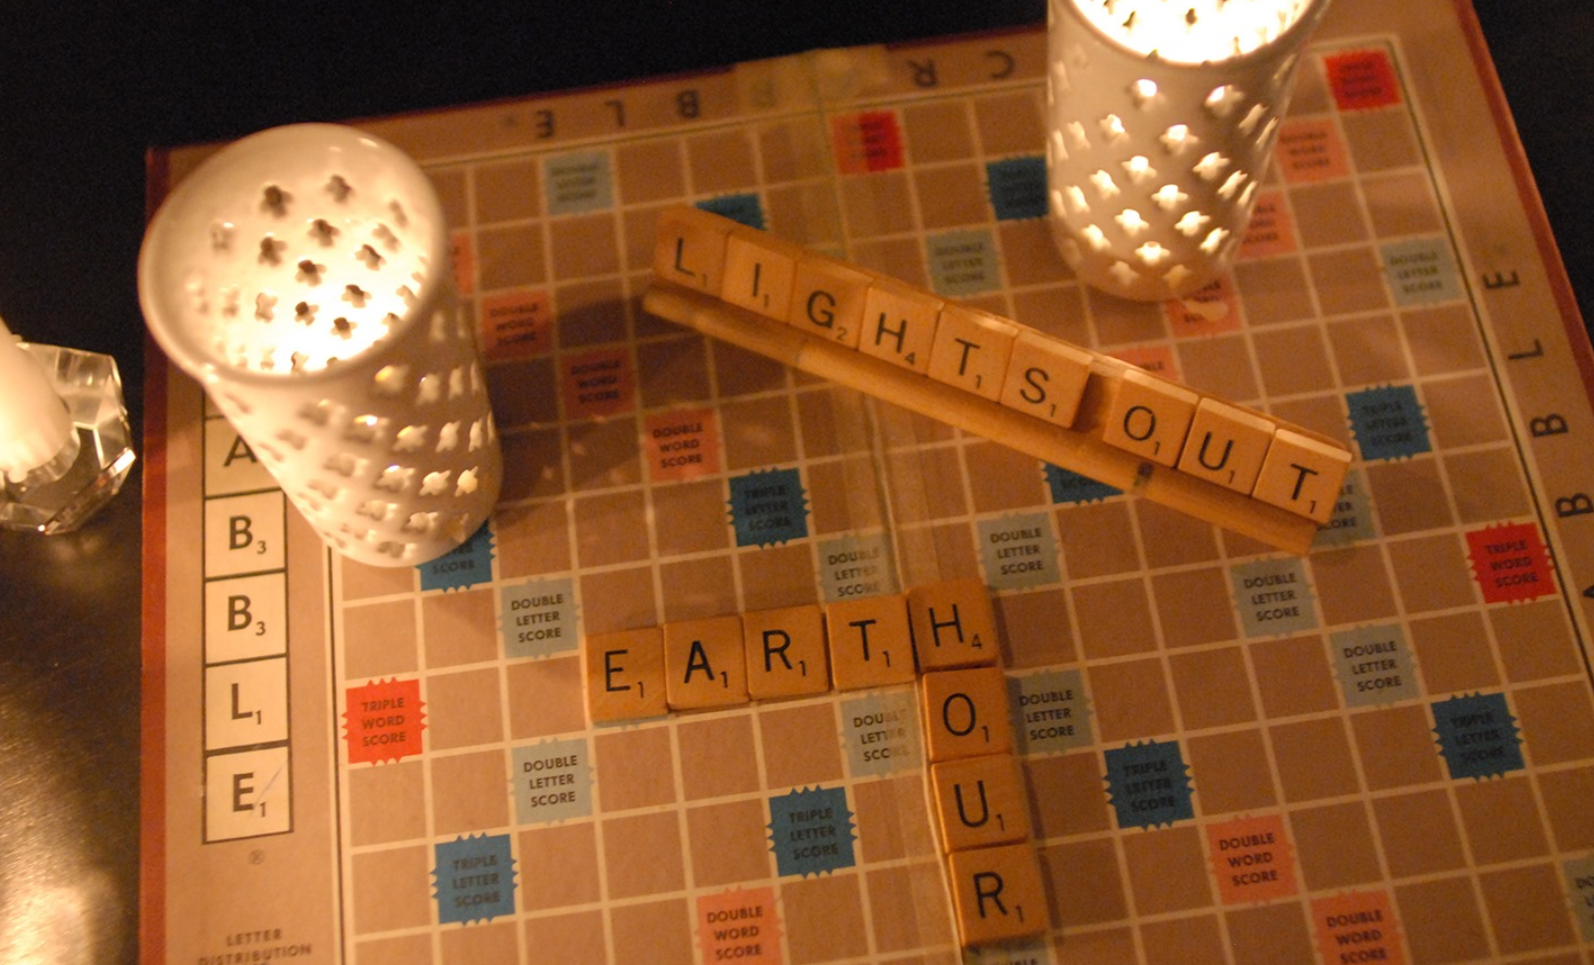 Earth Hour - lights out scrabble party